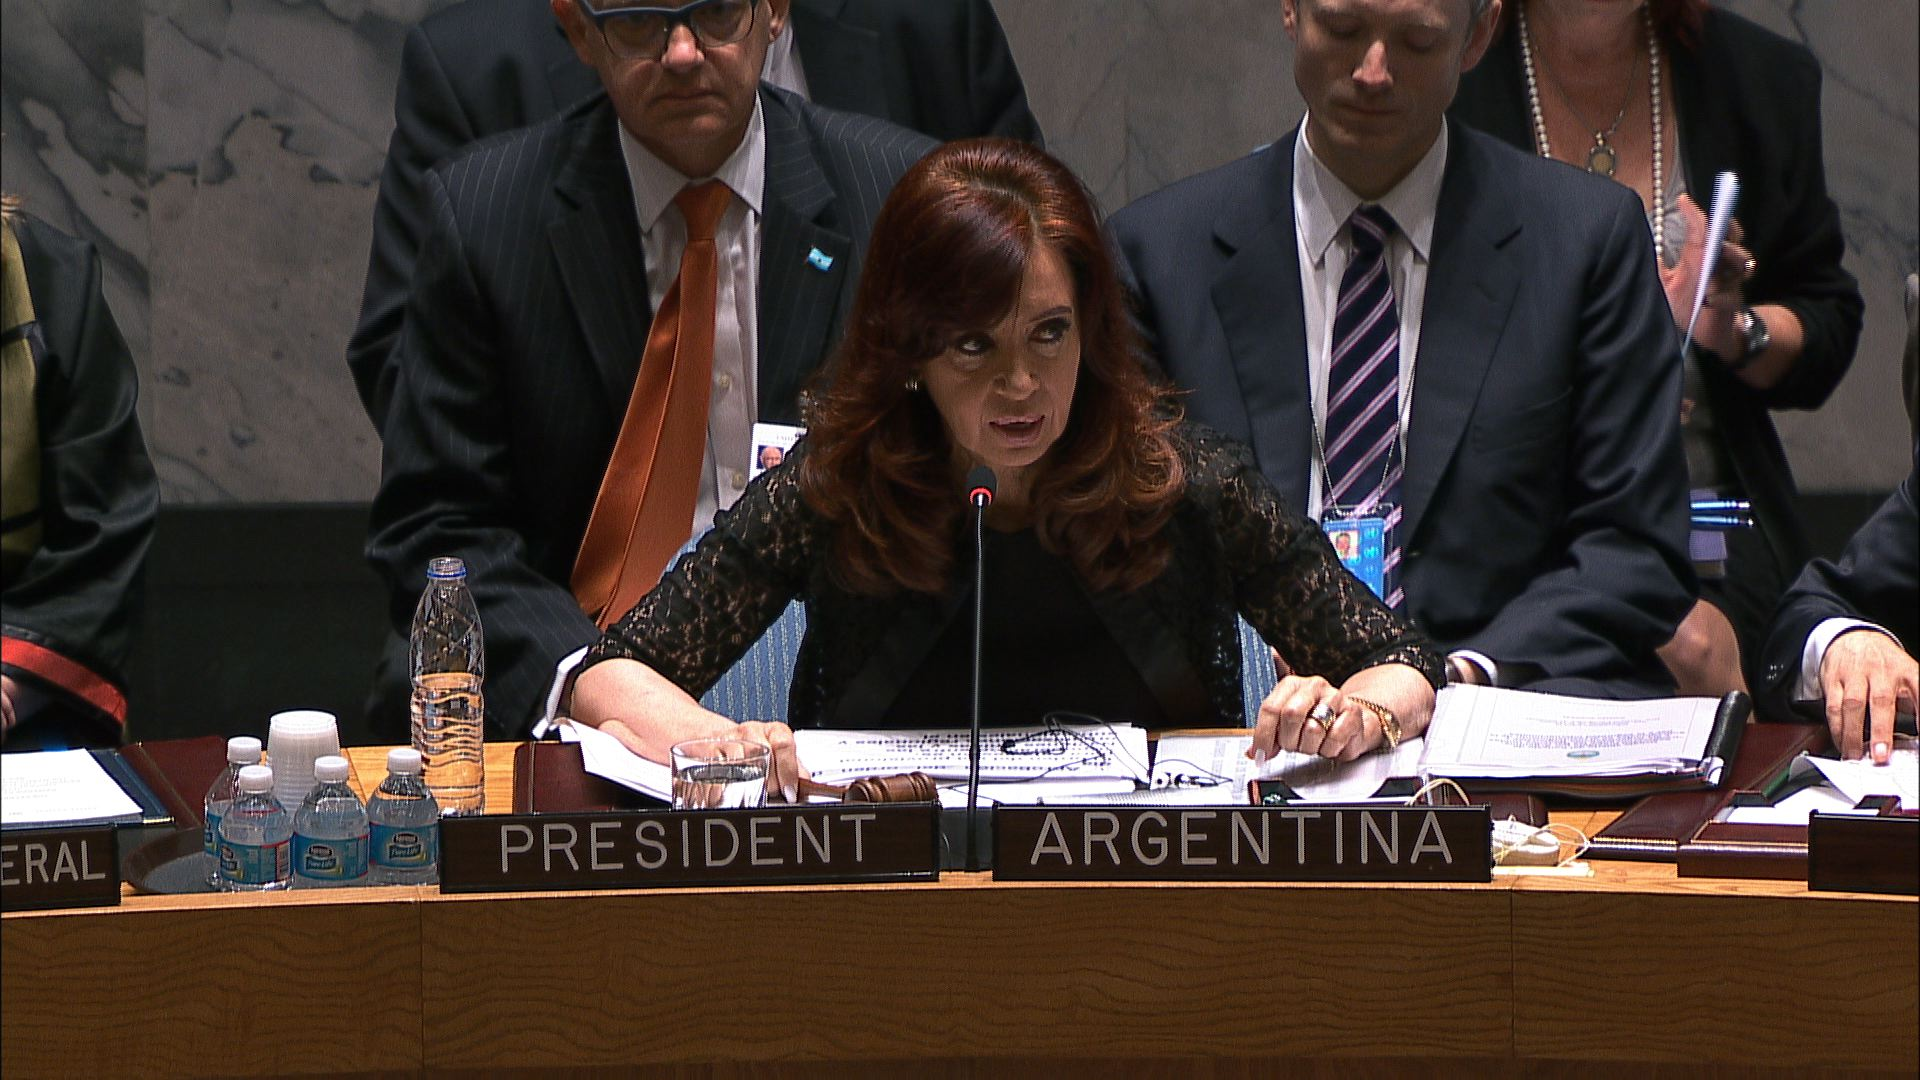 UN  KIRCHNER PEACE AND SECURITY